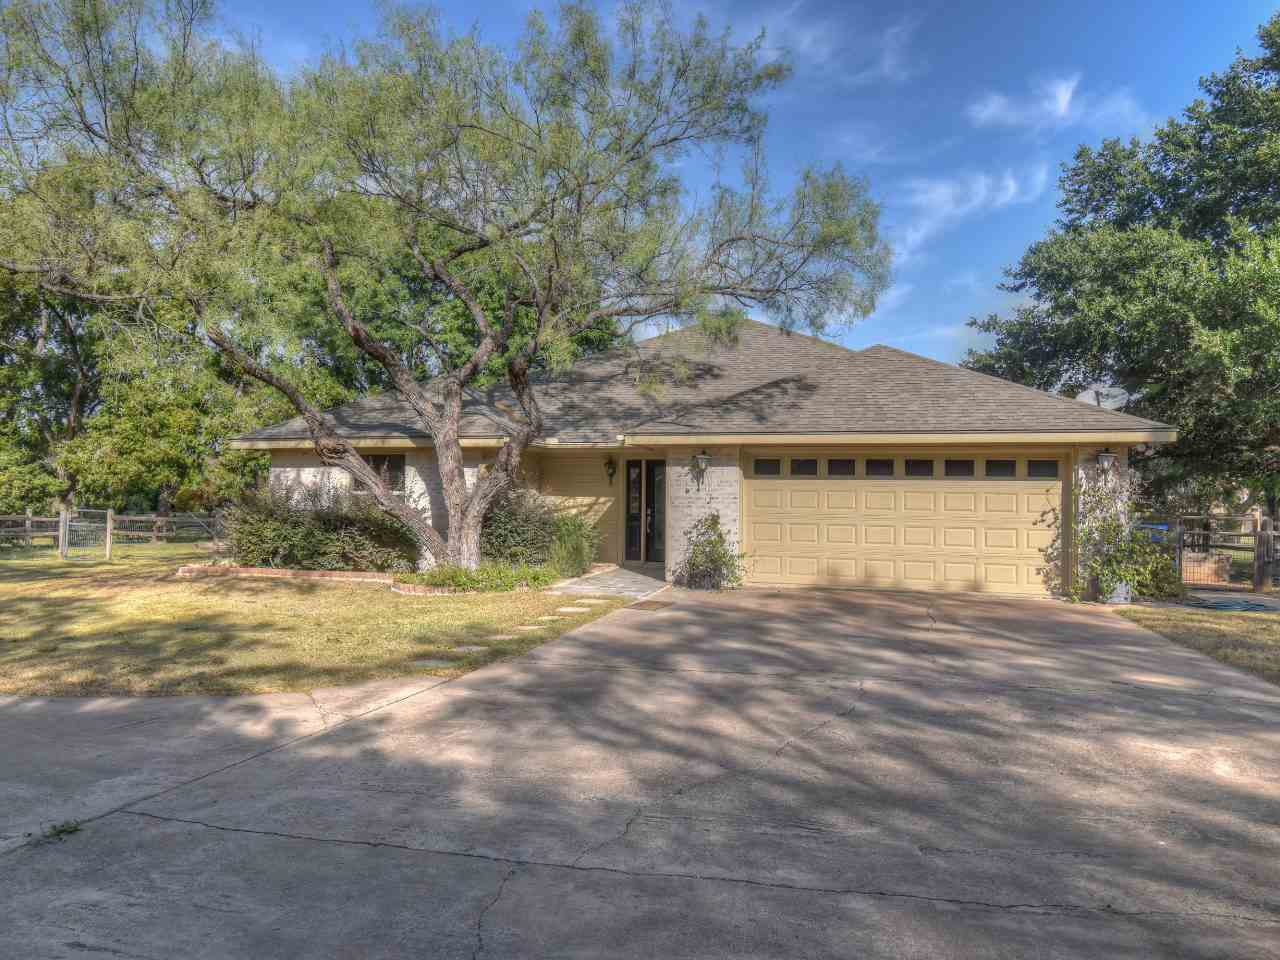 Single Family Home for Sale at 260 Braeburn Circle 260 Braeburn Circle Meadowlakes, Texas 78654 United States